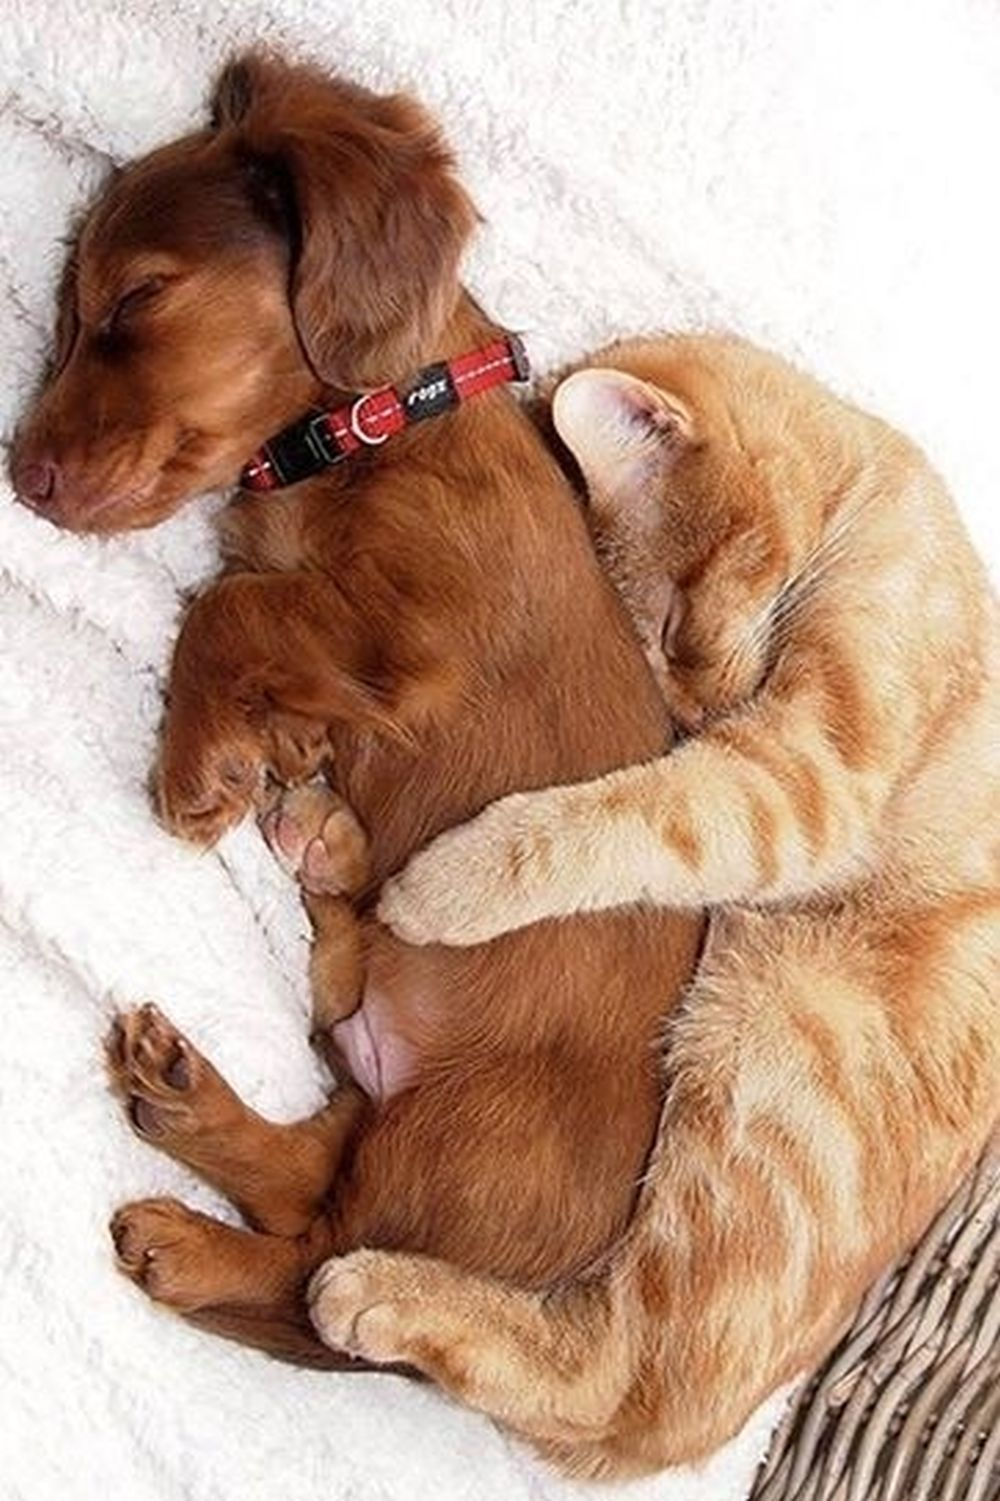 Best Friends Forever Inviting Home Inspired Cute Animals Pets Animals